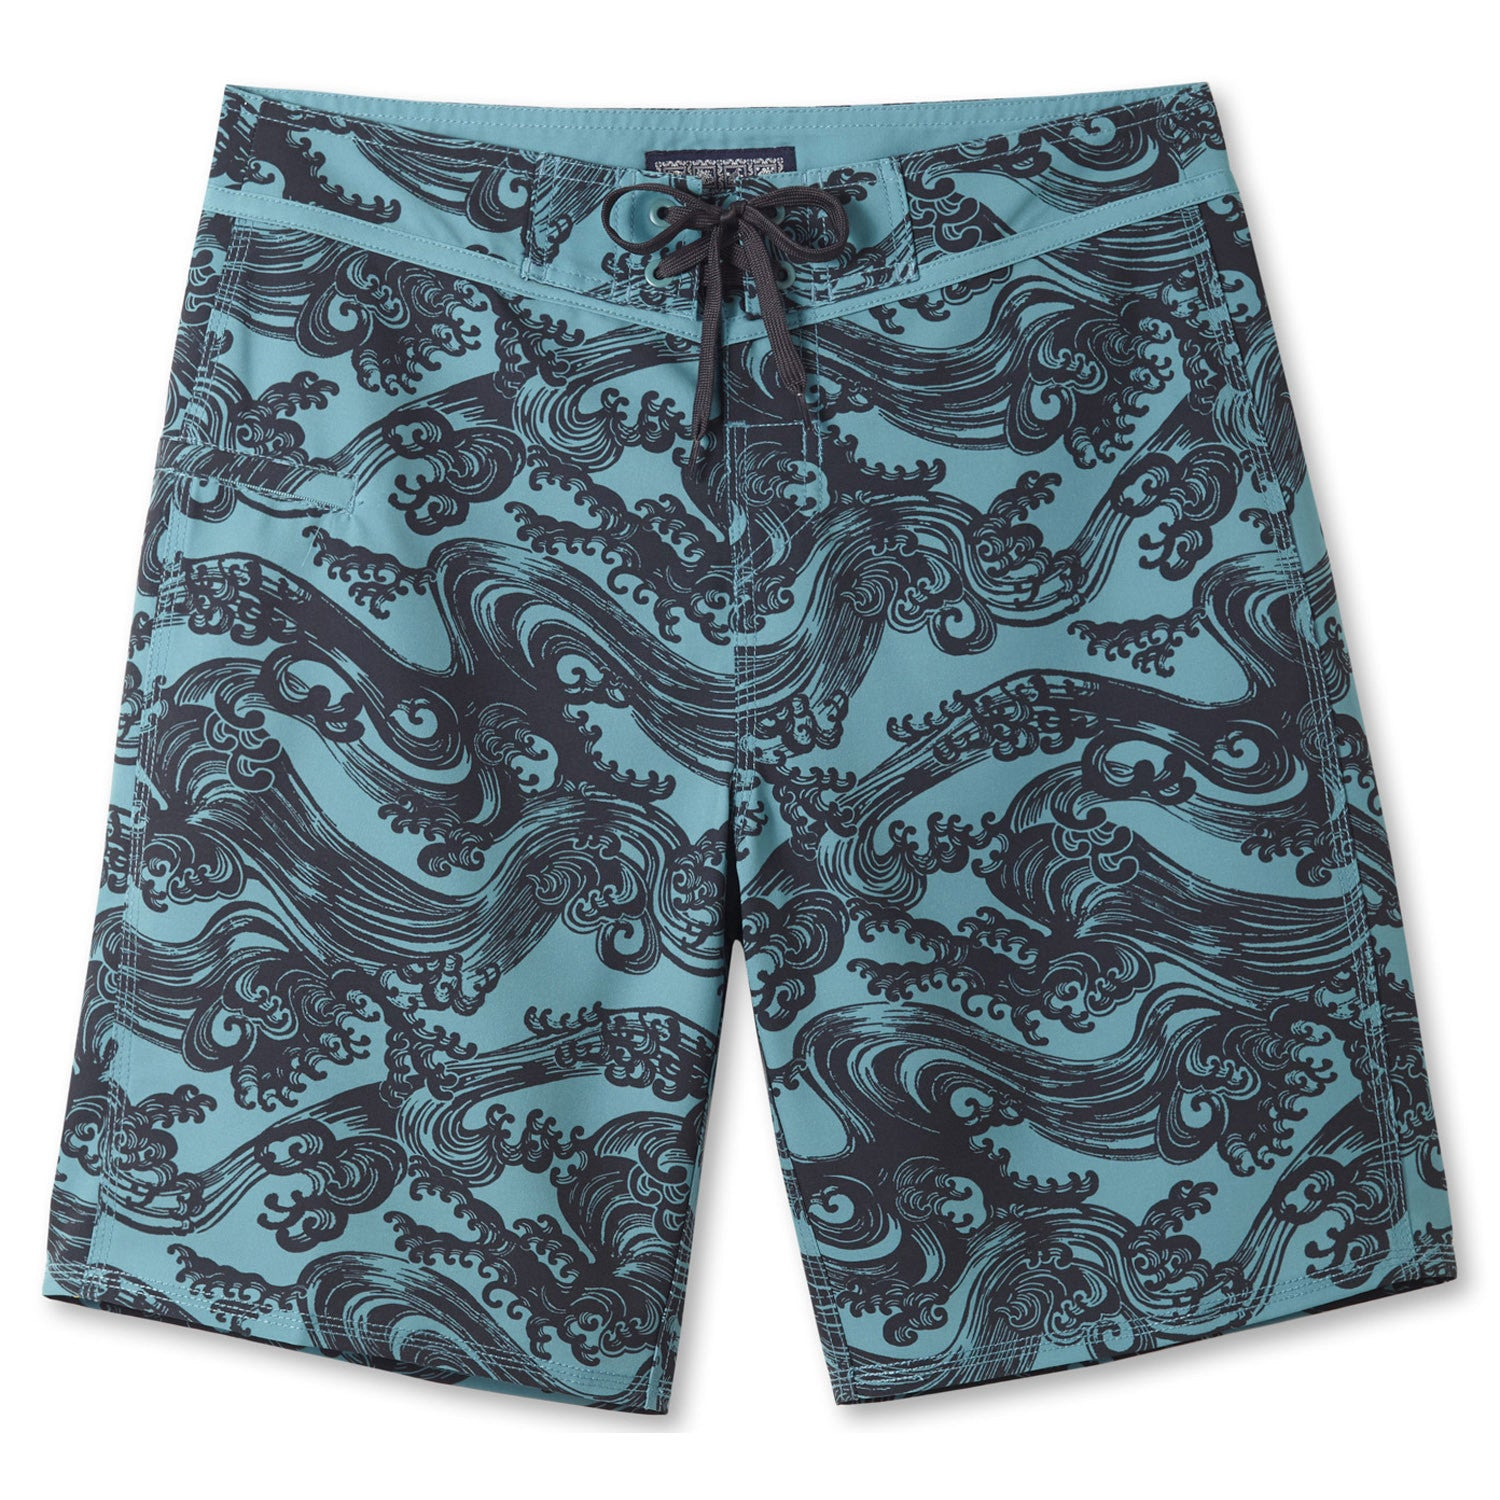 PAILOLO CHANNEL / 4-WAY STRETCH BOARDSHORTS • 9.5